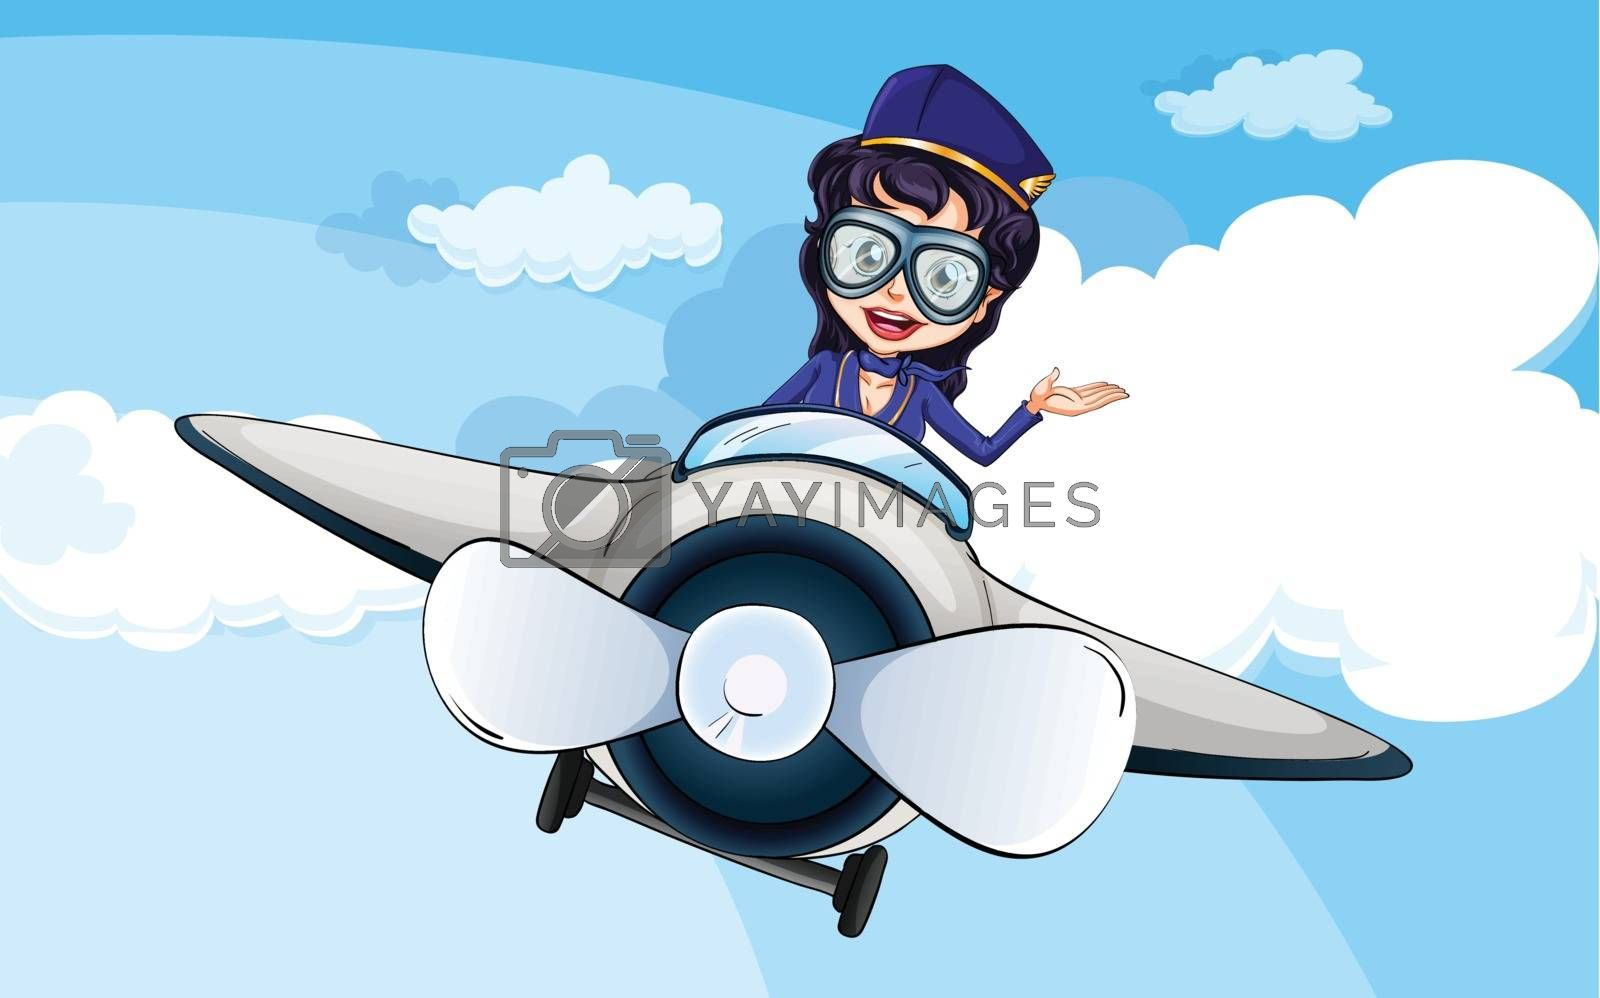 Illustration of a hostess on a plane